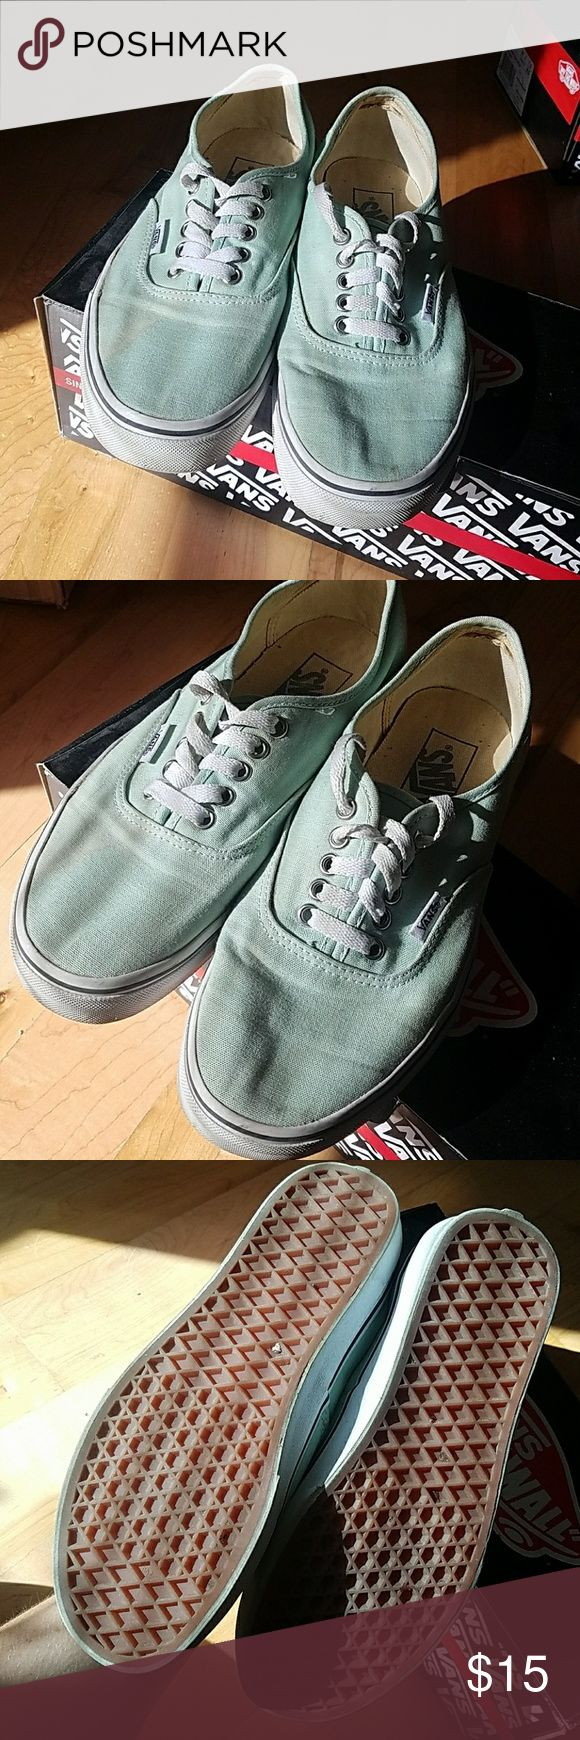 Vans Super cute mint vans classics I believe. Size 8.5, there's a little stain on the right shoe you can see in the first photo but perfect shape otherwise. Vans Shoes Sneakers